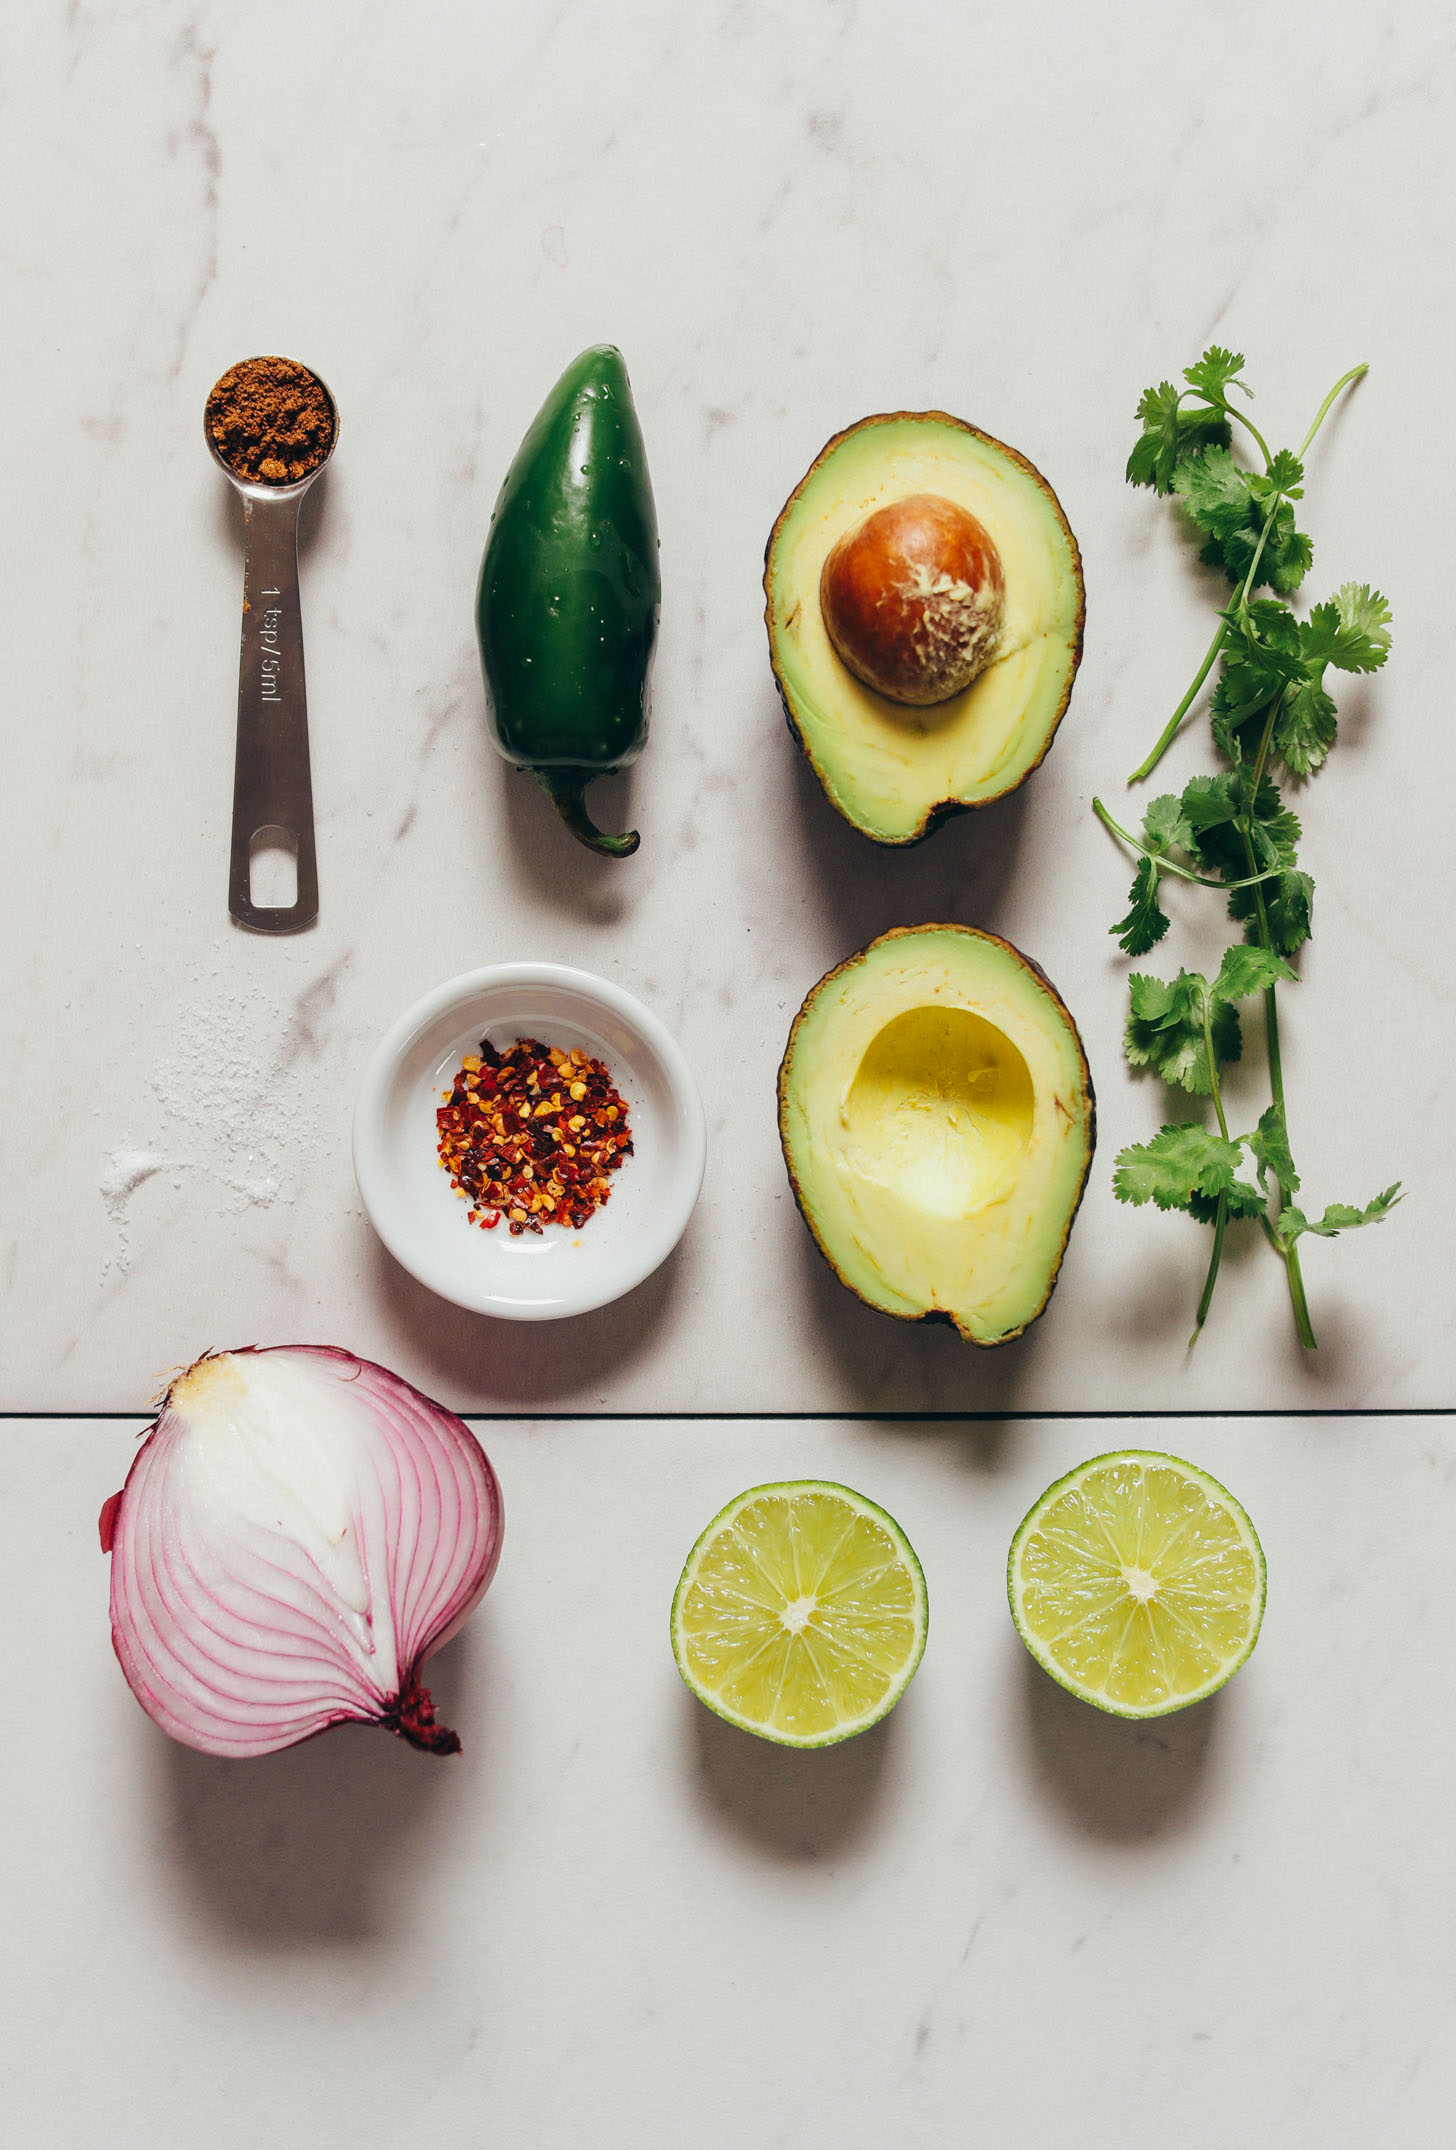 Overhead image of guacamole ingredients lined up in rows, including onion, guacamole, jalapeno, cilantro, and red pepper flake